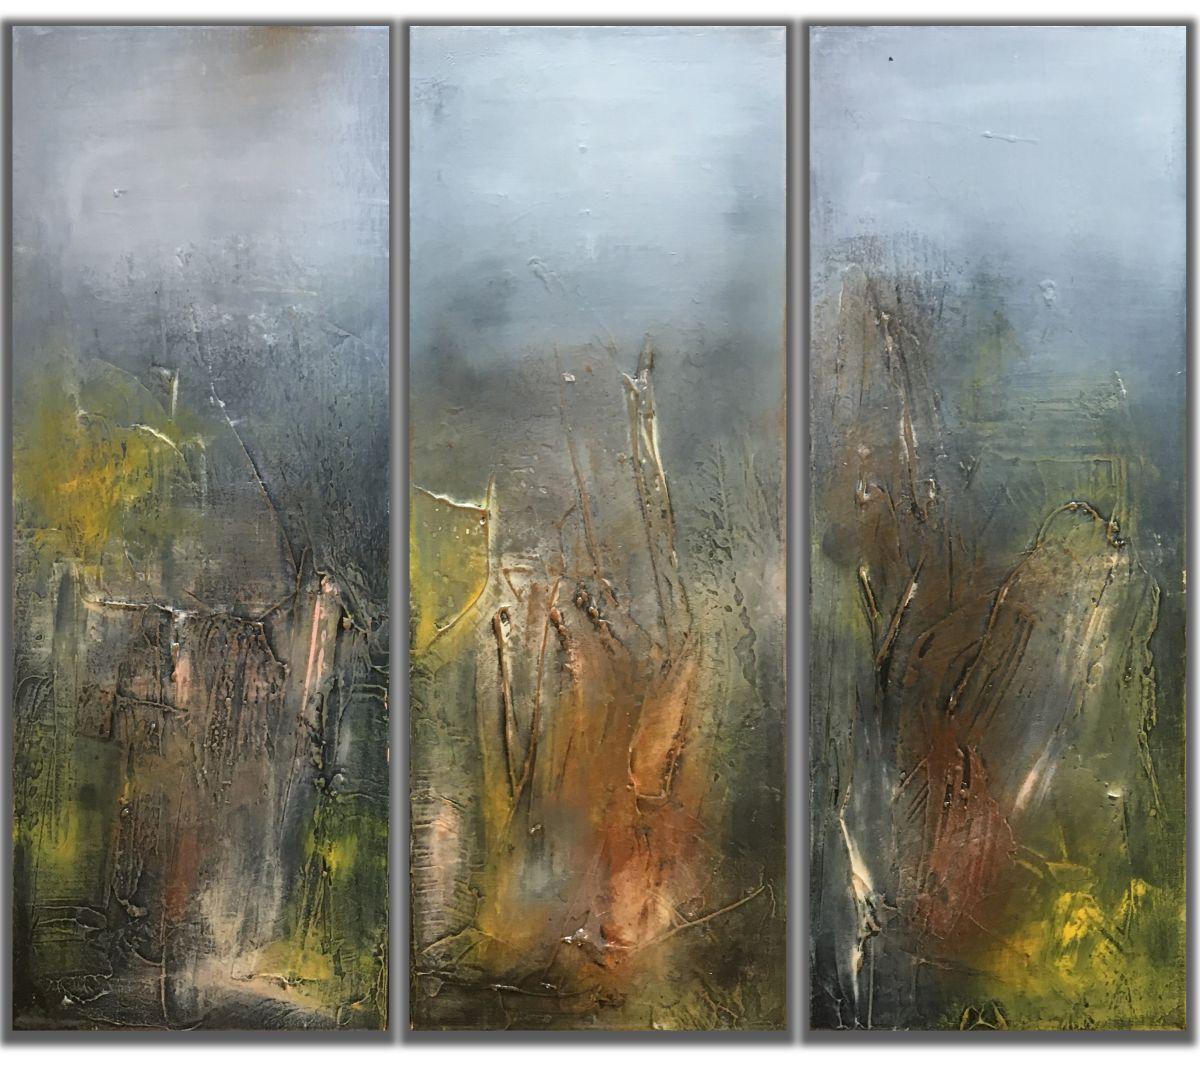 Triptych textured abstract painting 2016 acrylic for Textured acrylic abstract paintings